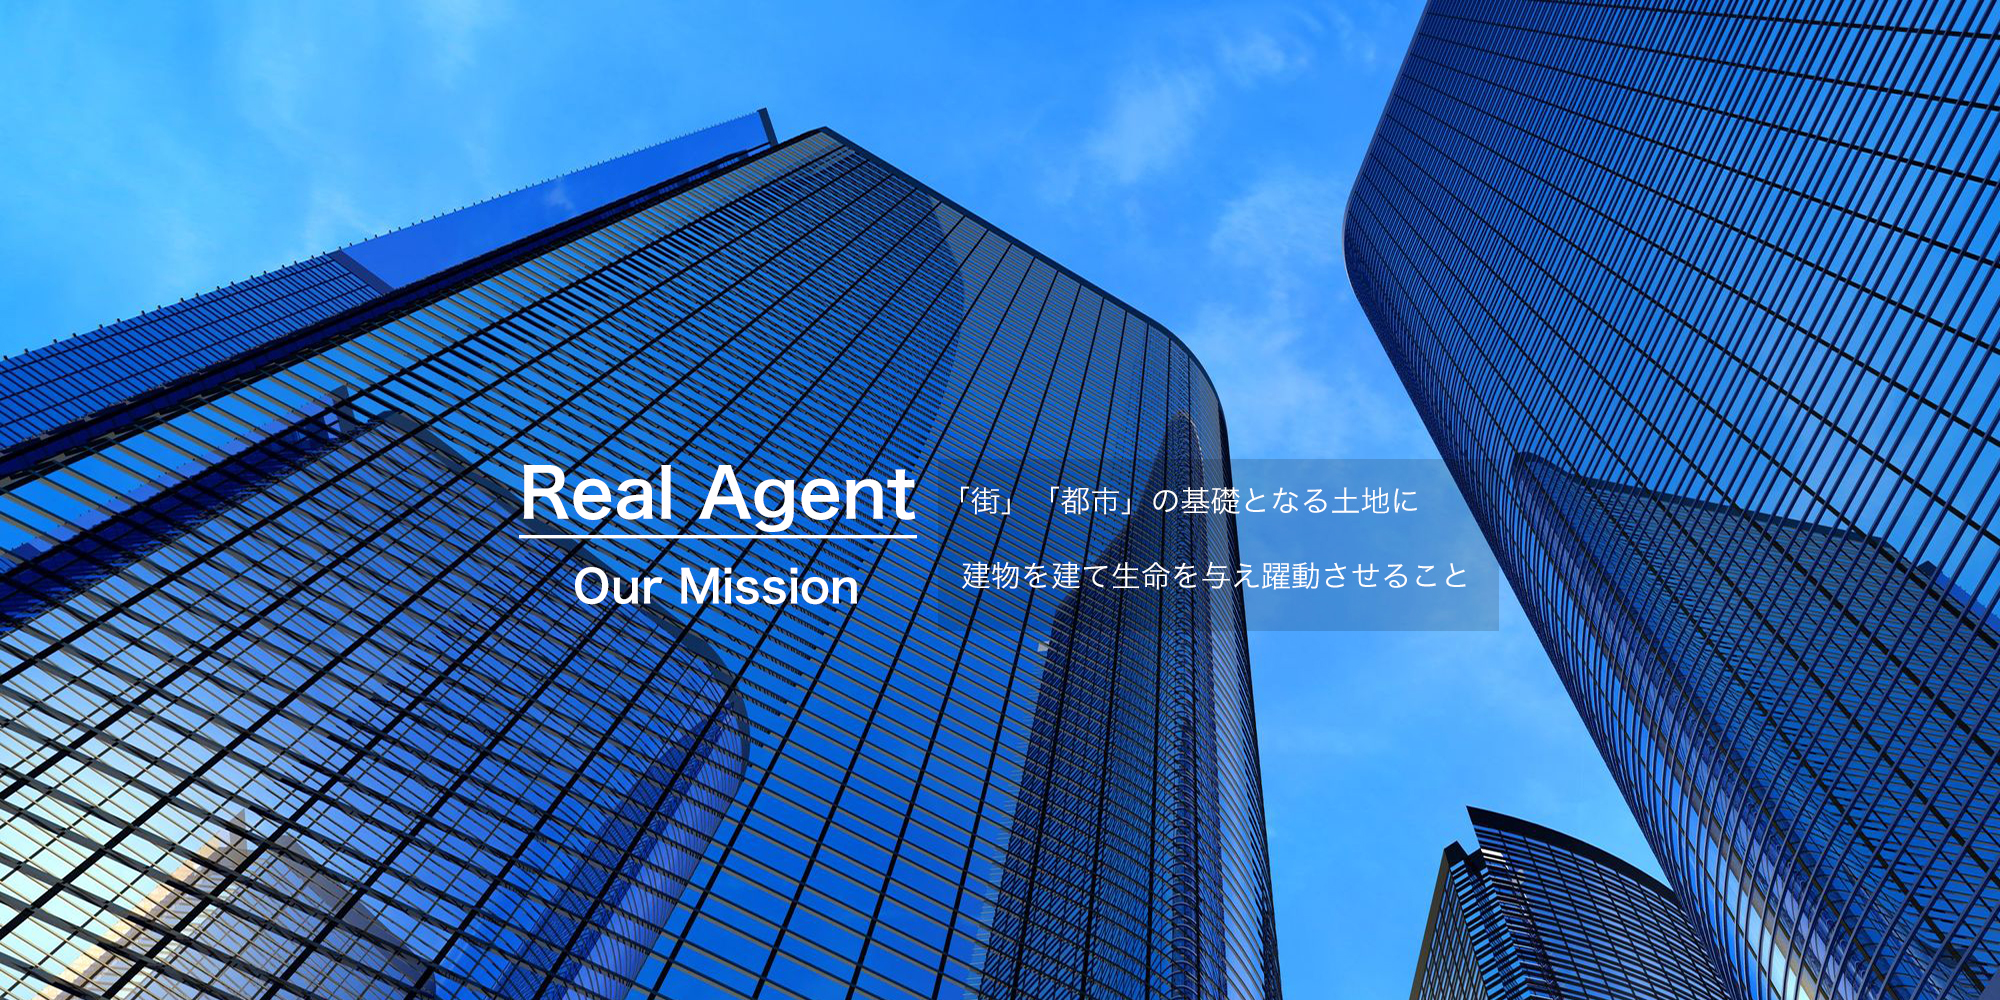 Real Agent Our Mission 「街」「都市」の基礎となる土地に建物を建て生命を与え躍動させること。